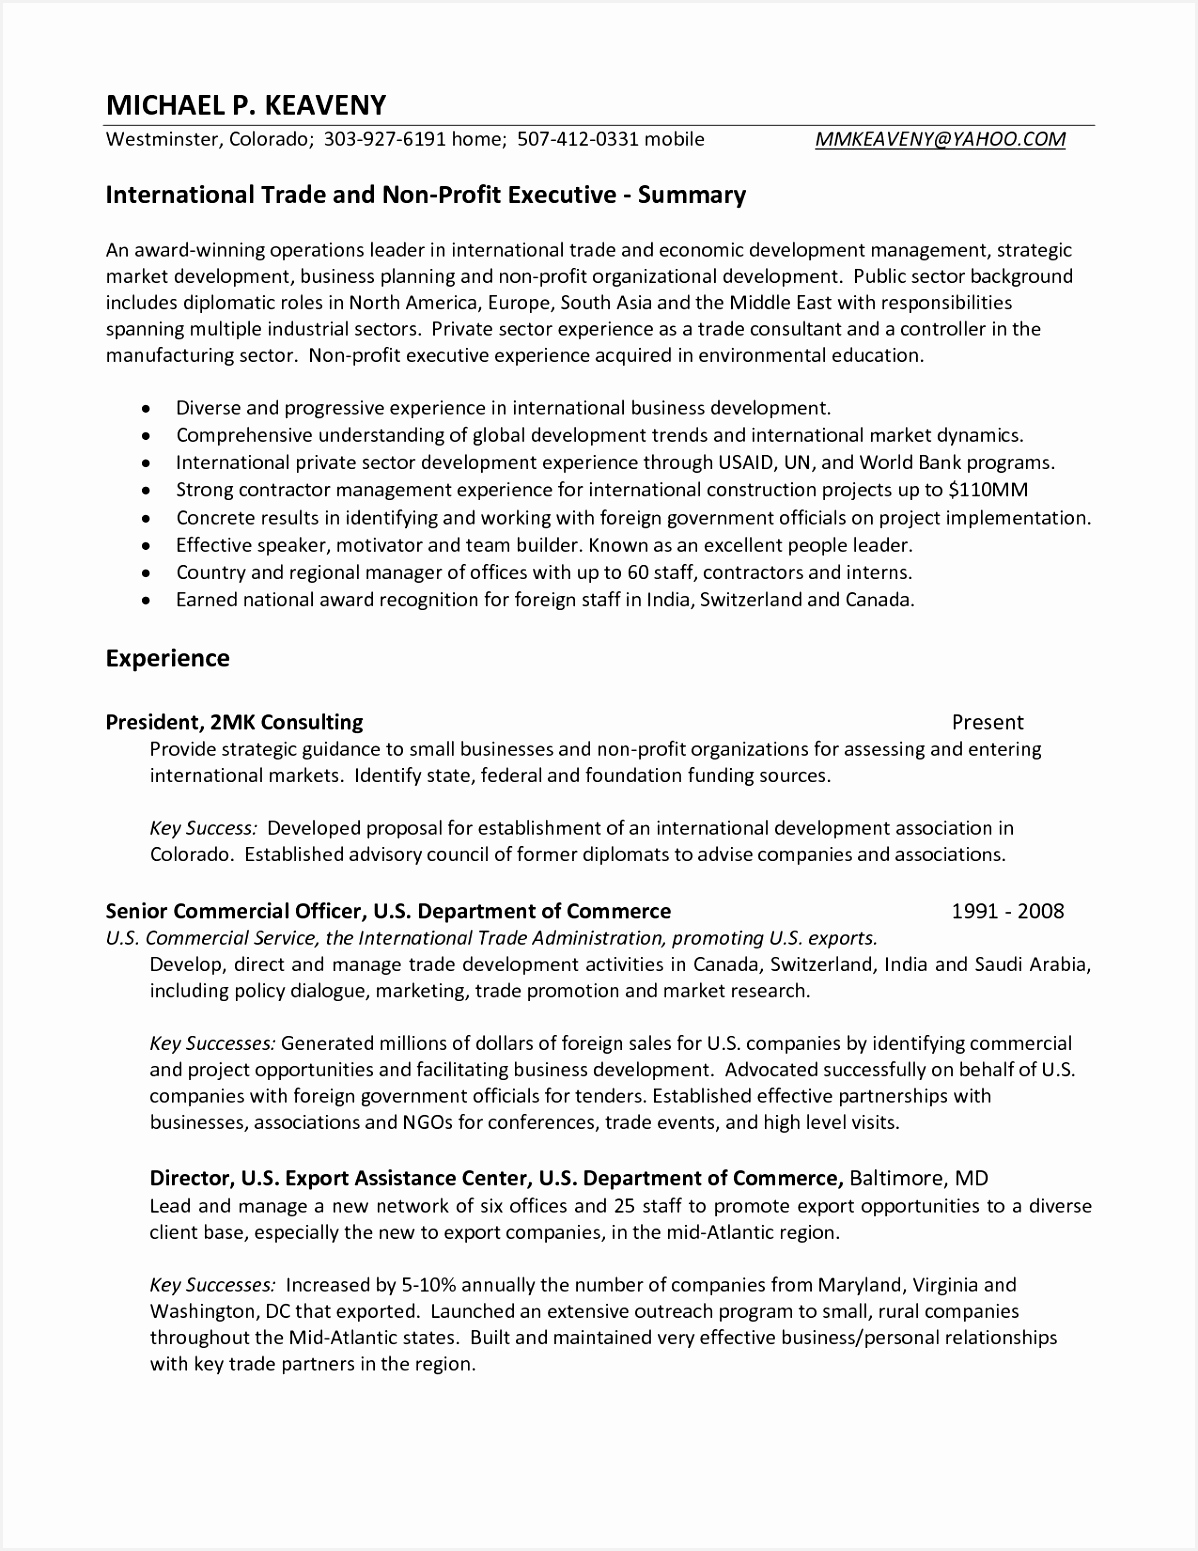 Resume Samples Director New American Resume Sample New Student Resume 0d Wallpapers 42 Awesome 15511198ktvhf